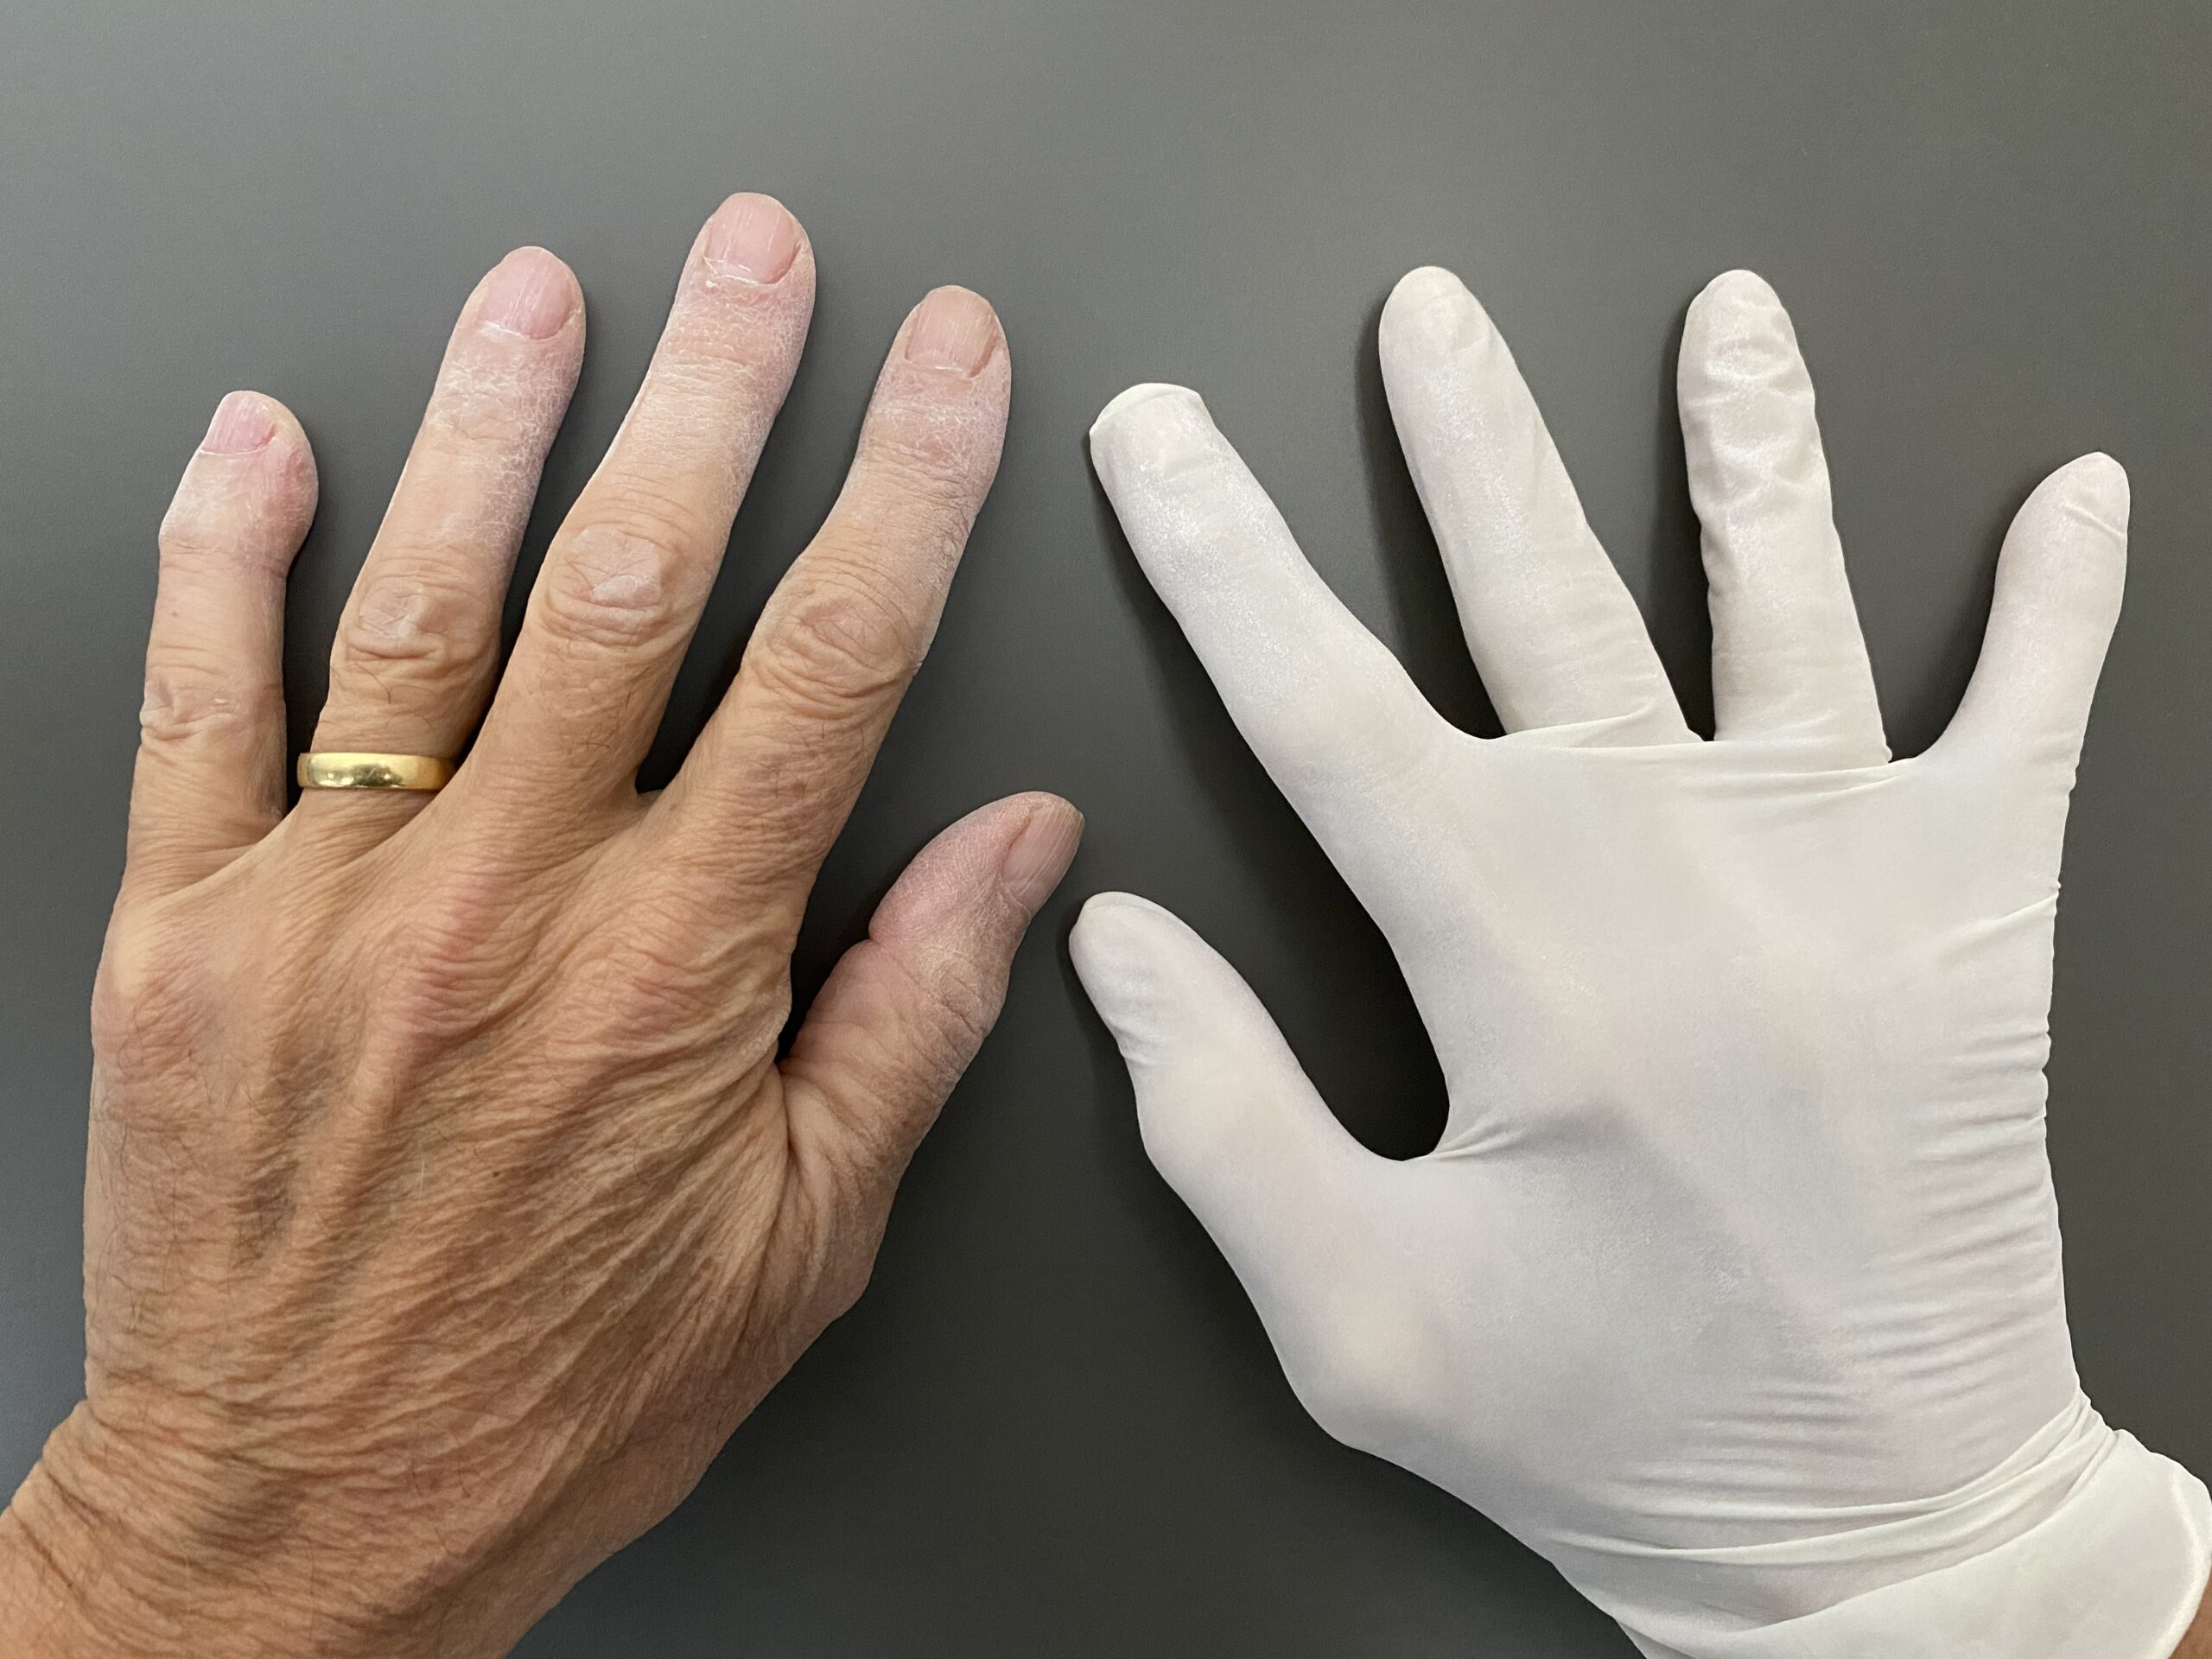 Hands up! What are the gloves for?